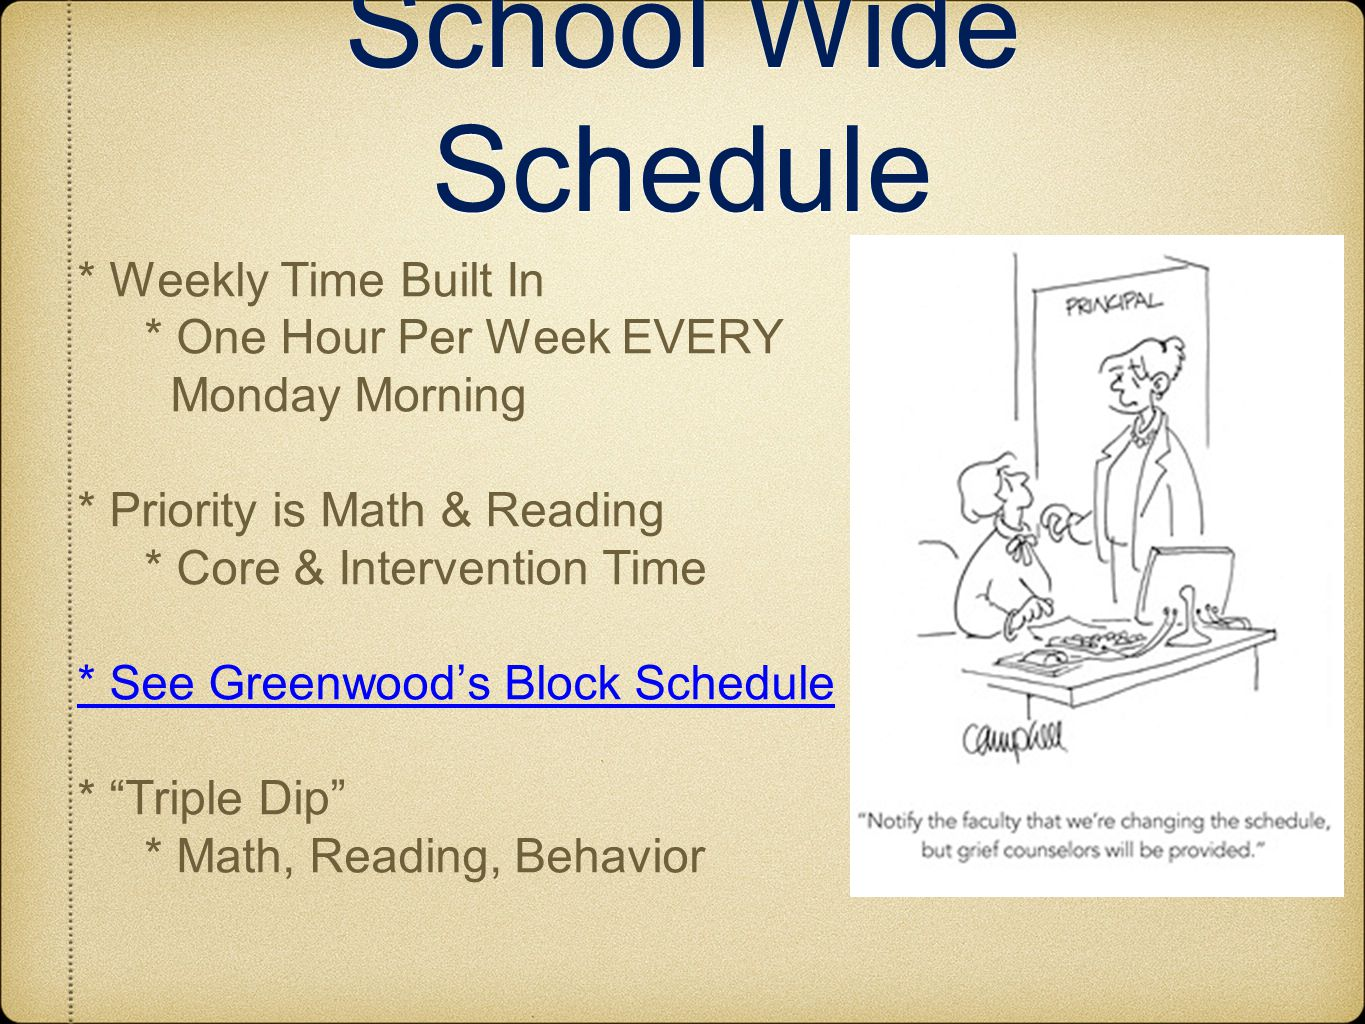 School Wide Schedule * Weekly Time Built In * One Hour Per Week EVERY Monday Morning * Priority is Math & Reading * Core & Intervention Time * See Greenwood's Block Schedule * Triple Dip * Math, Reading, Behavior